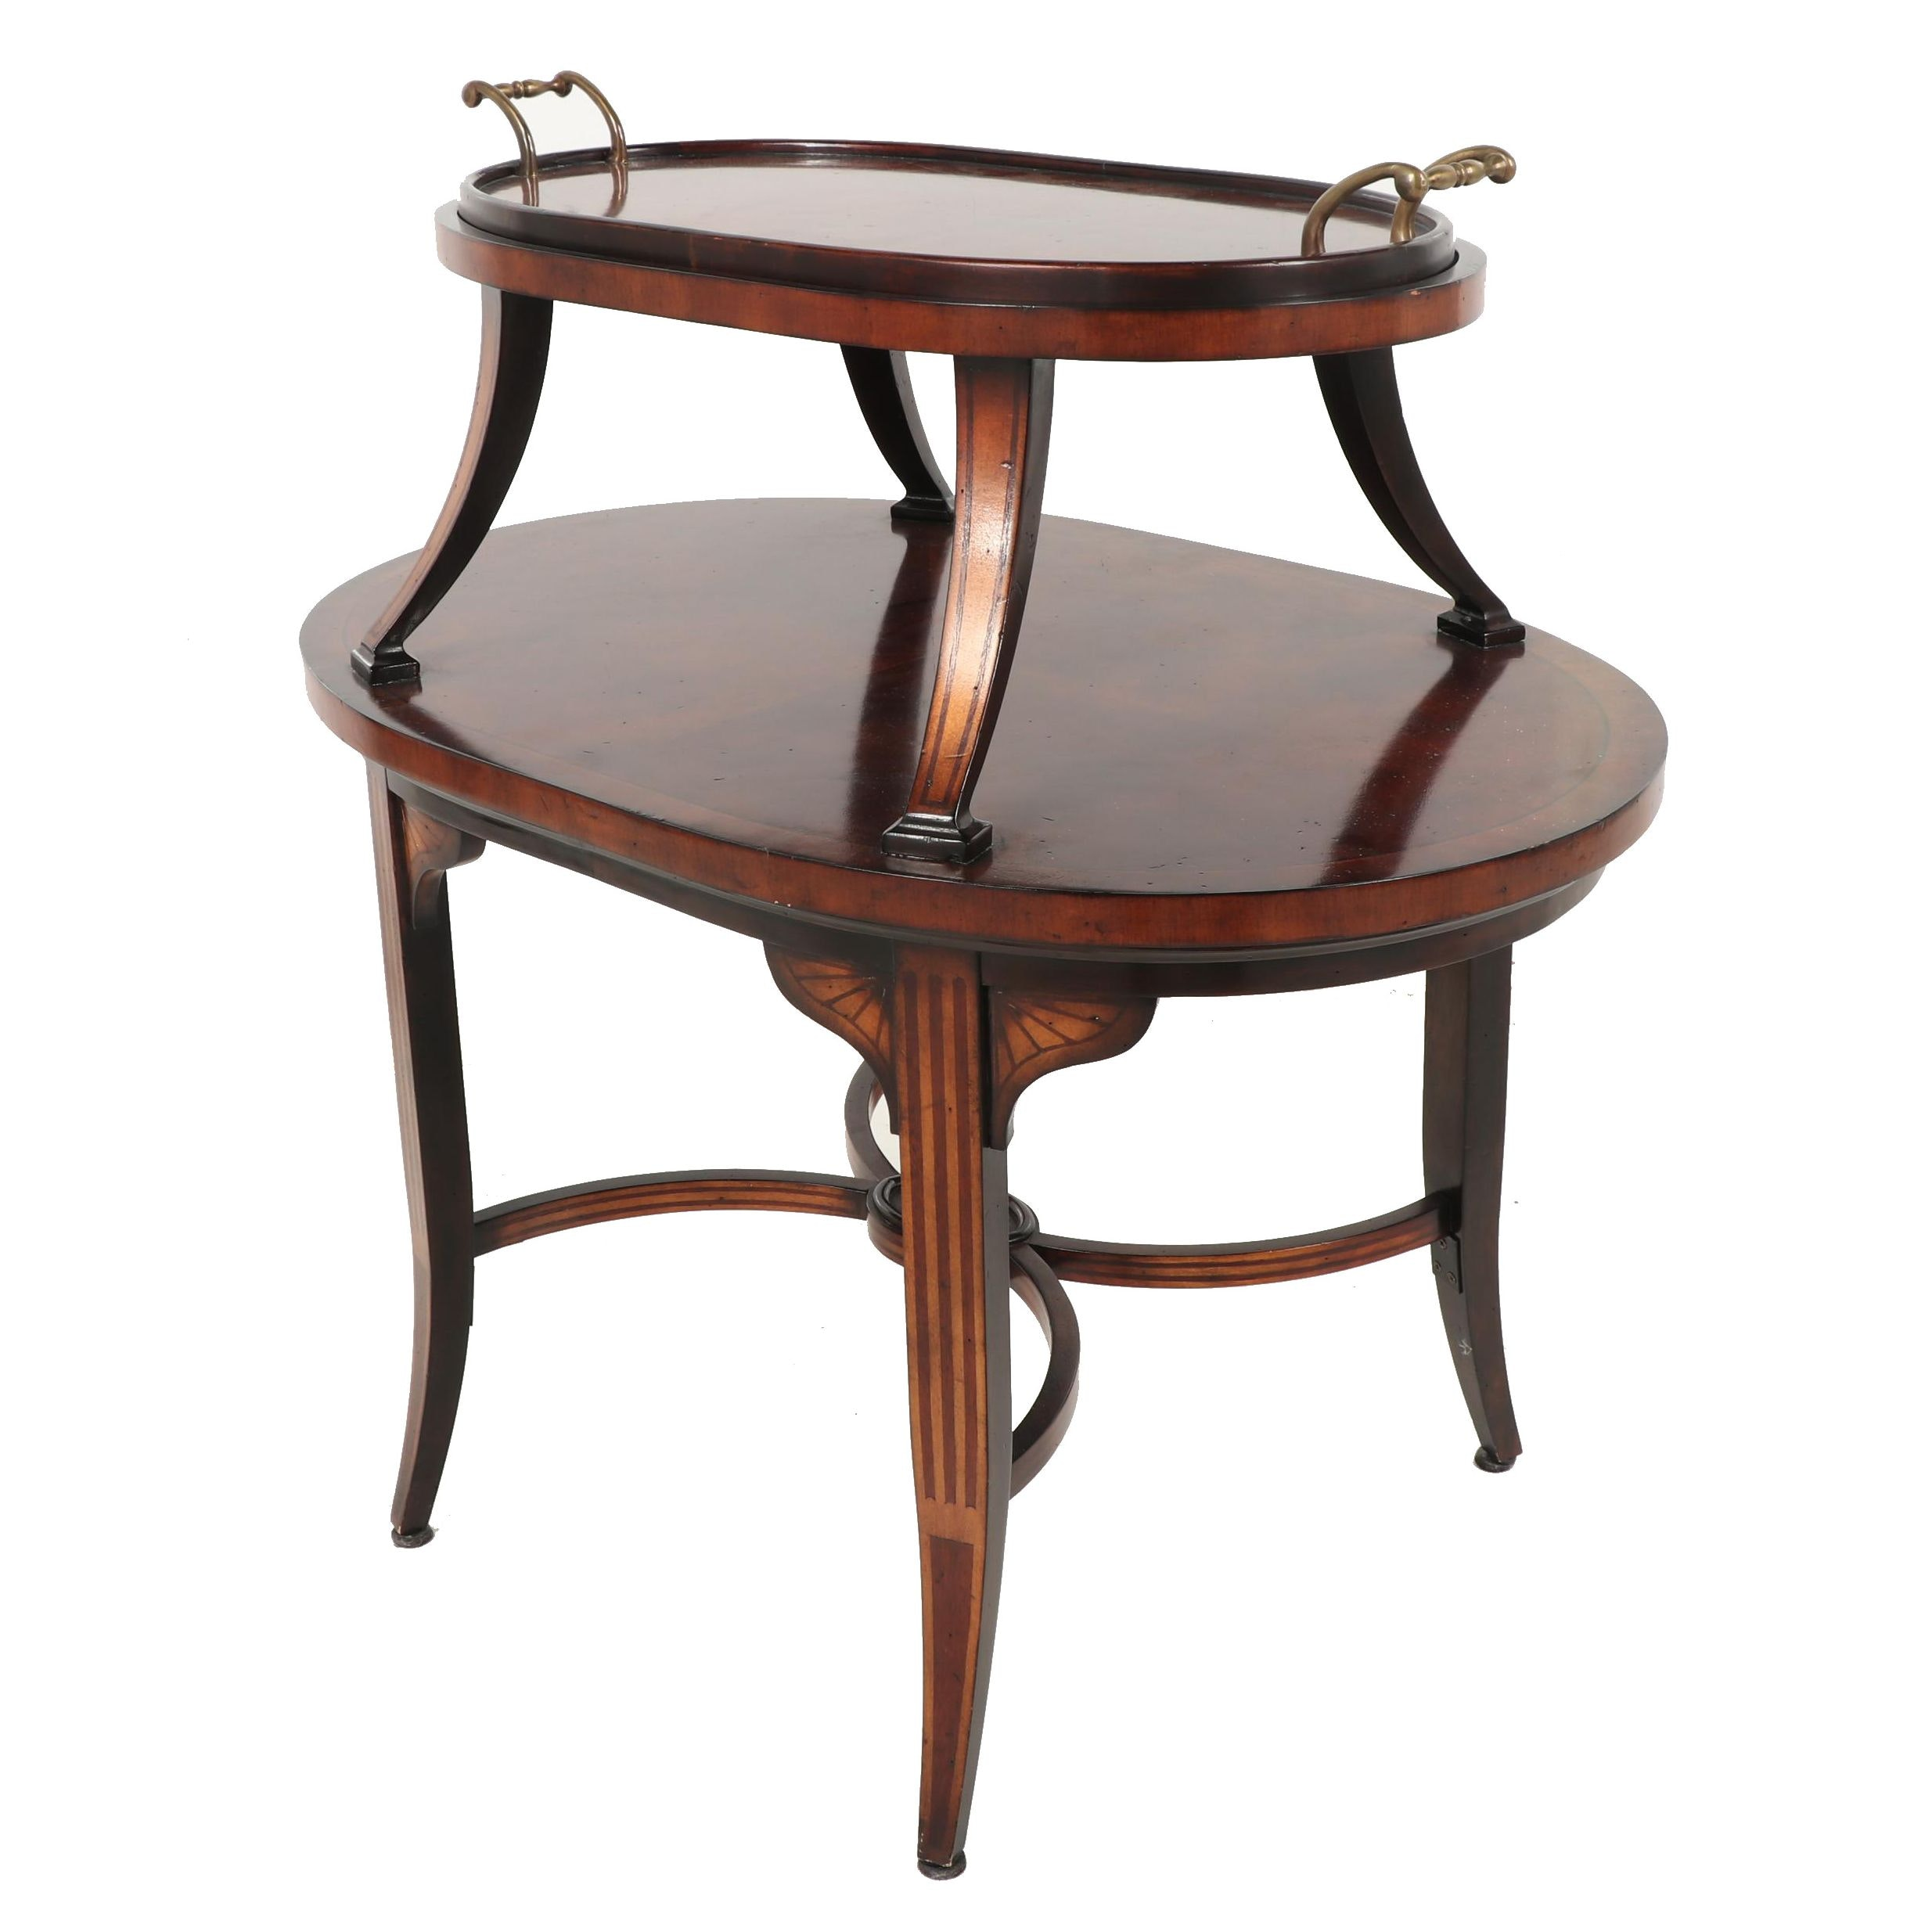 Regency Style Wooden Two-Tiered Serving Table, Contemporary